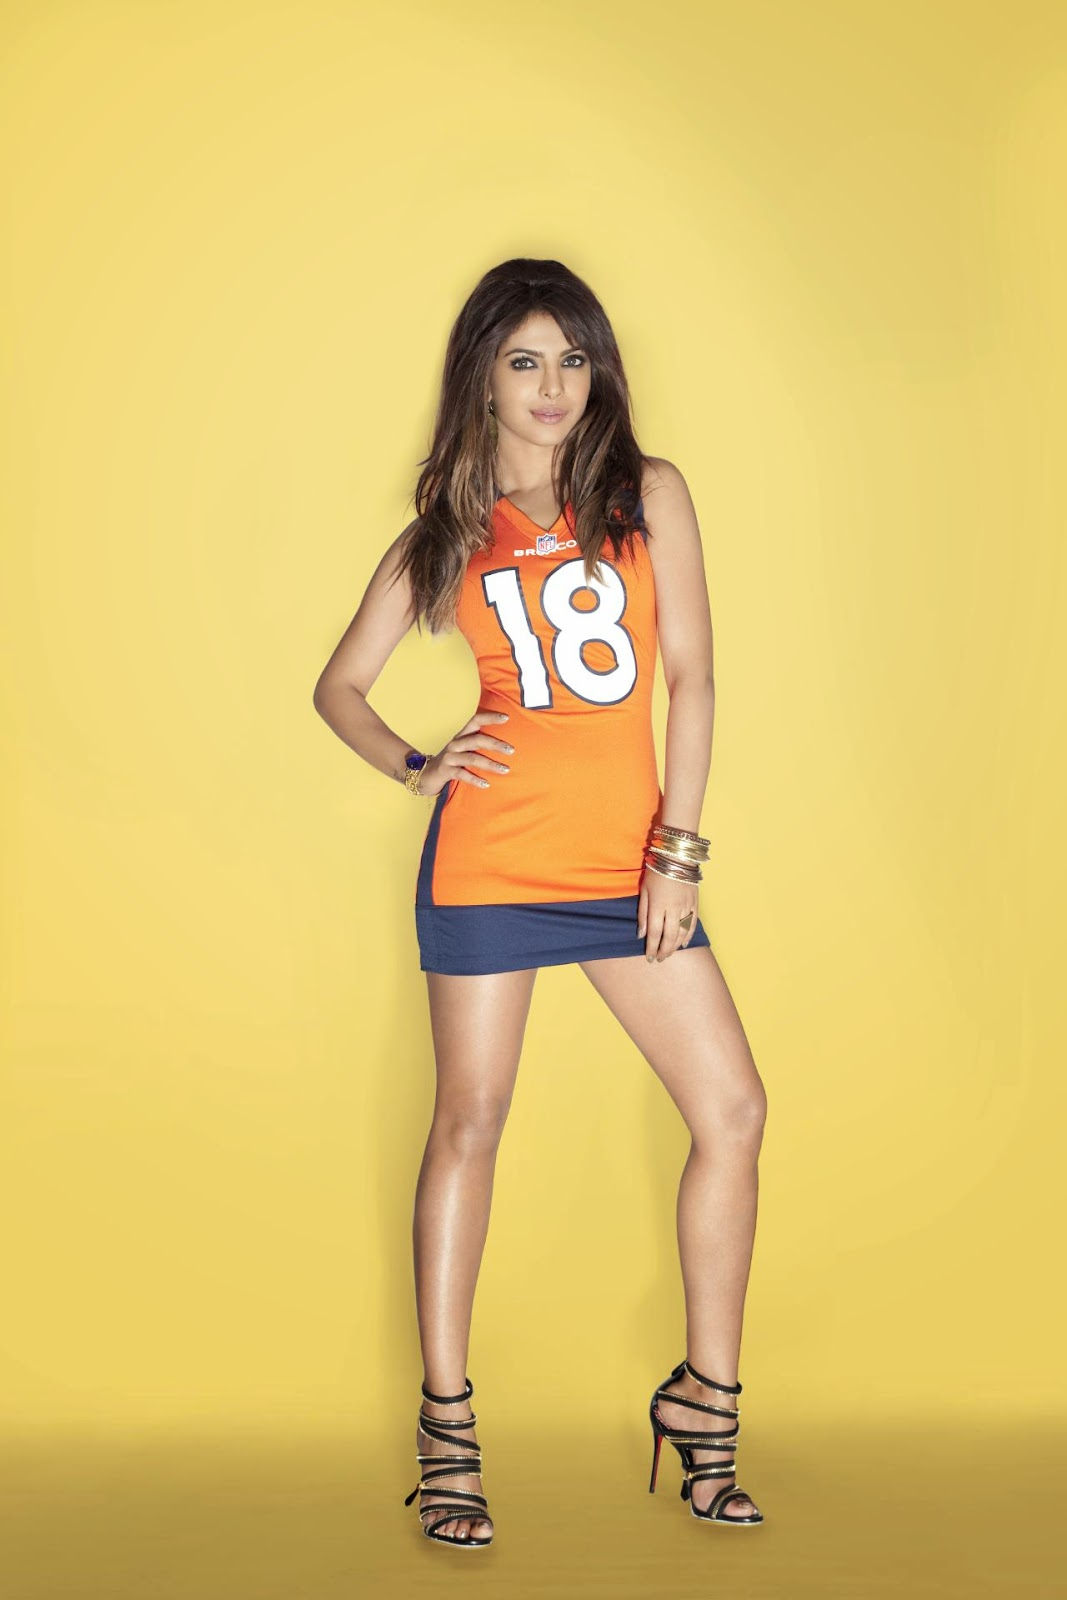 Priyanka Chopra's Sexy Legs in NFL Jersey Mini-dress